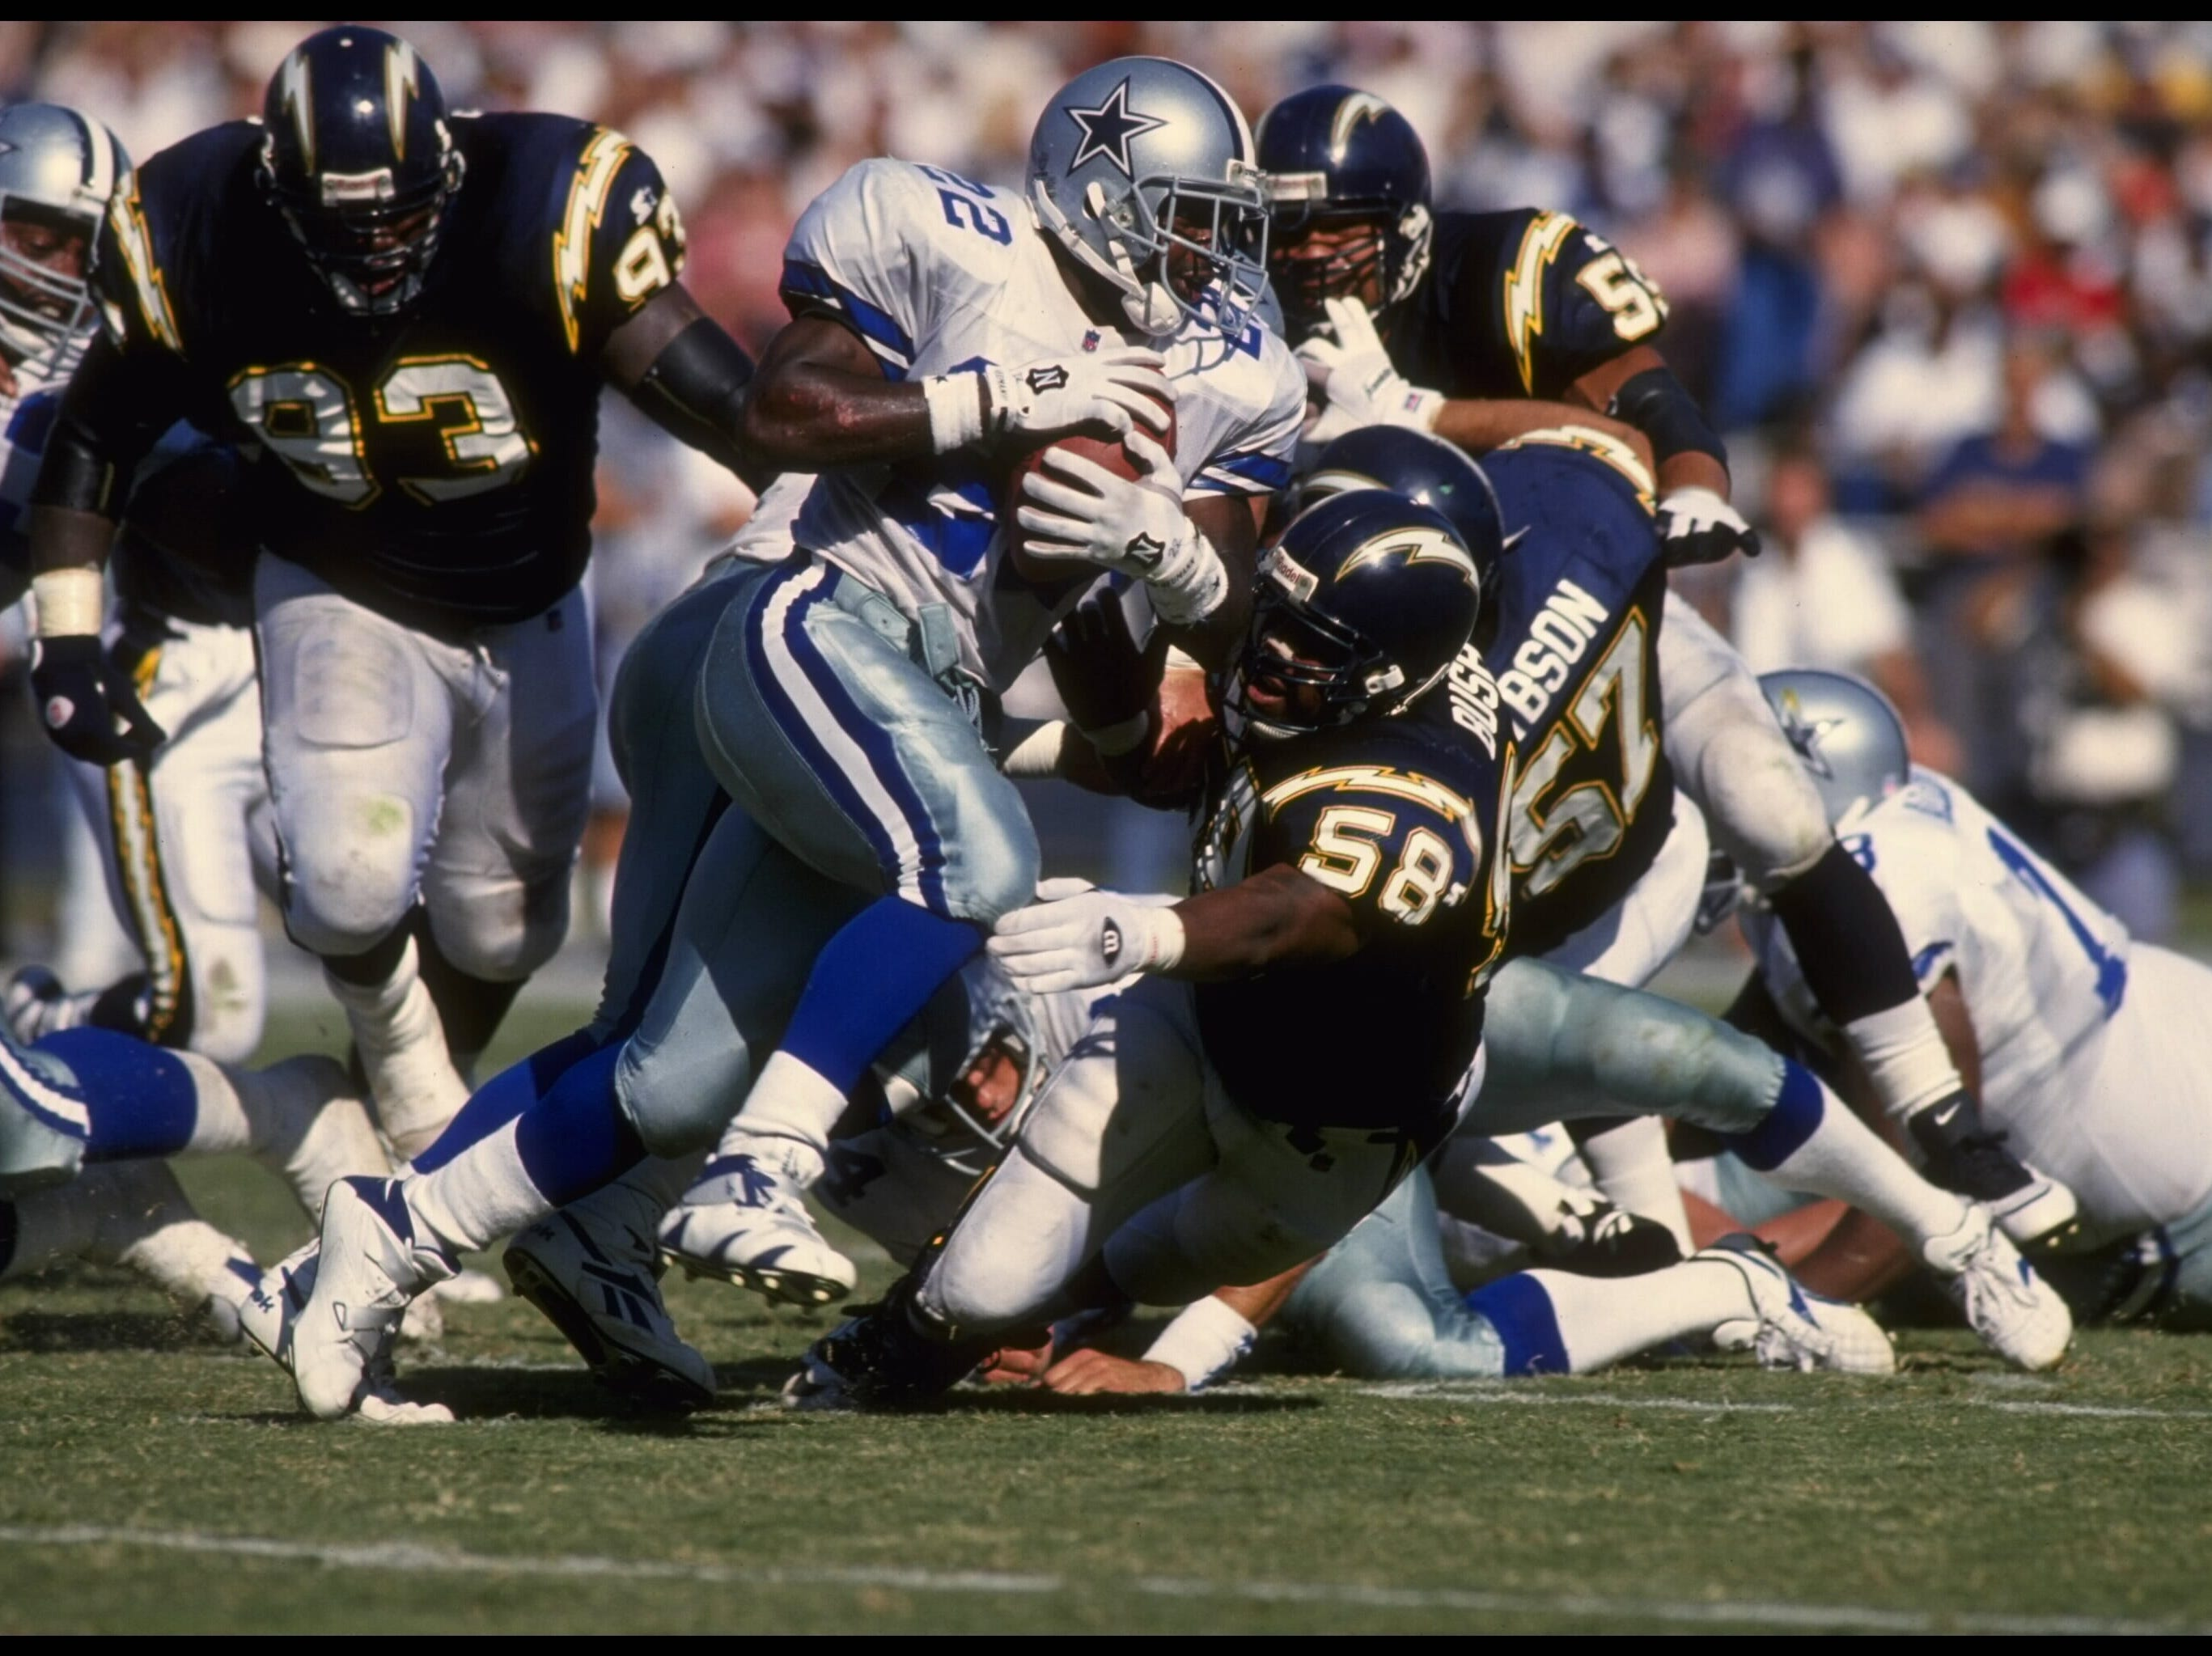 LINEBACKER LEWIS BUSH #58 OF THE SAN DIEGO CHARGERS STRETCHES OUT TO TACKLE RUNNING BACK EMMITT SMITH #22 OF THE DALLAS COWBOYS DURING THE COWBOYS 23-9 WIN AT JACK MURPHY STADIUM IN SAN DIEGO, CALIFORNIA.  MANDATORY CREDIT:  STEPHEN DUNN/ALL